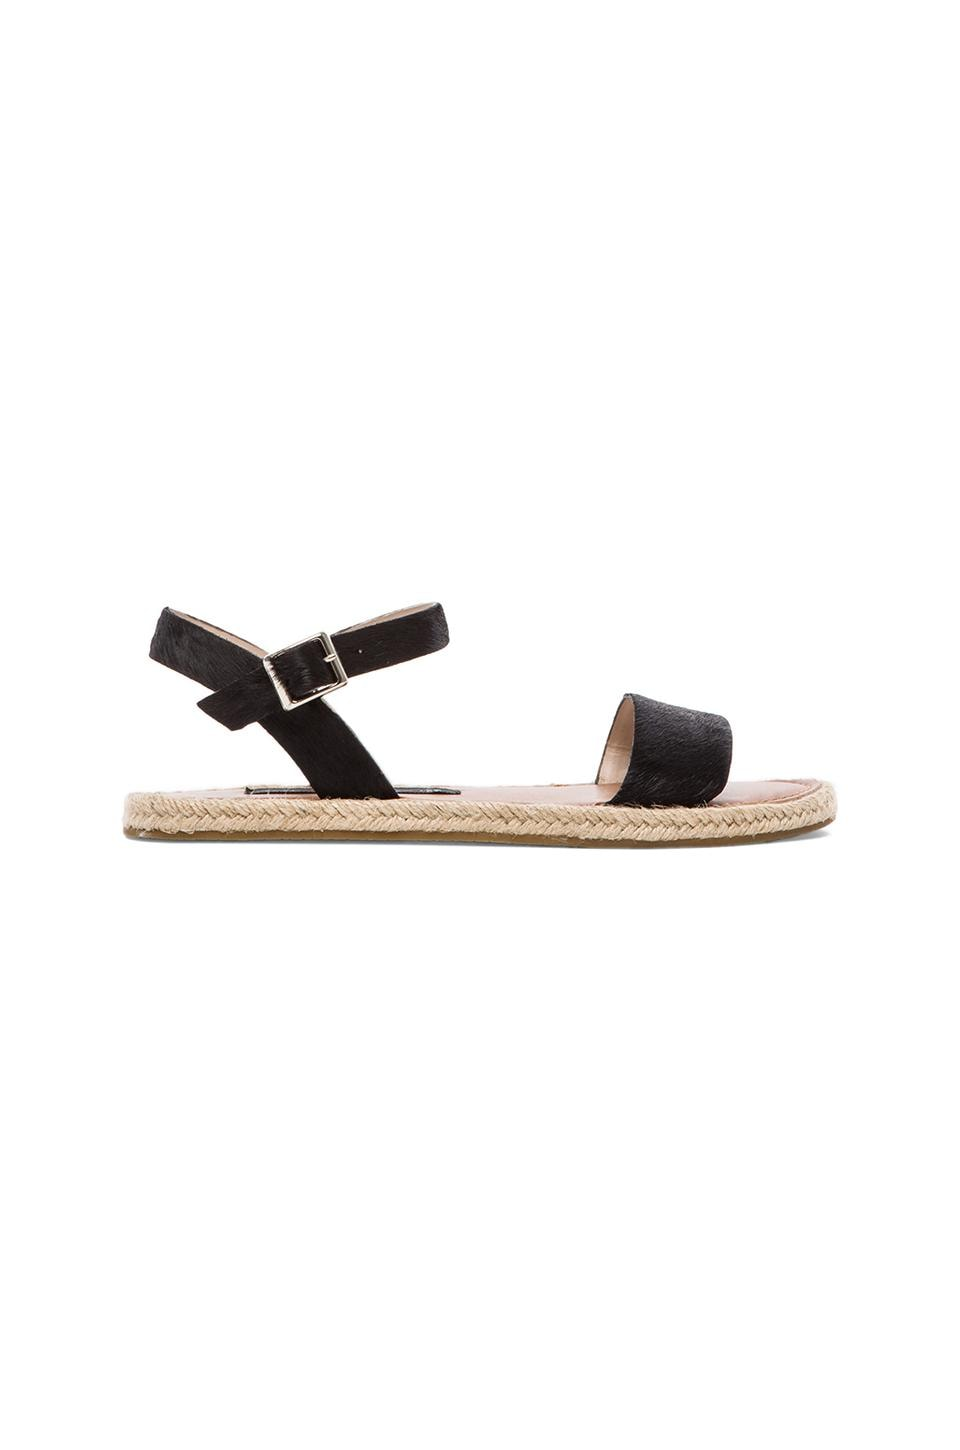 Steven Liliie Sandal with Calf Fur in Black Pony